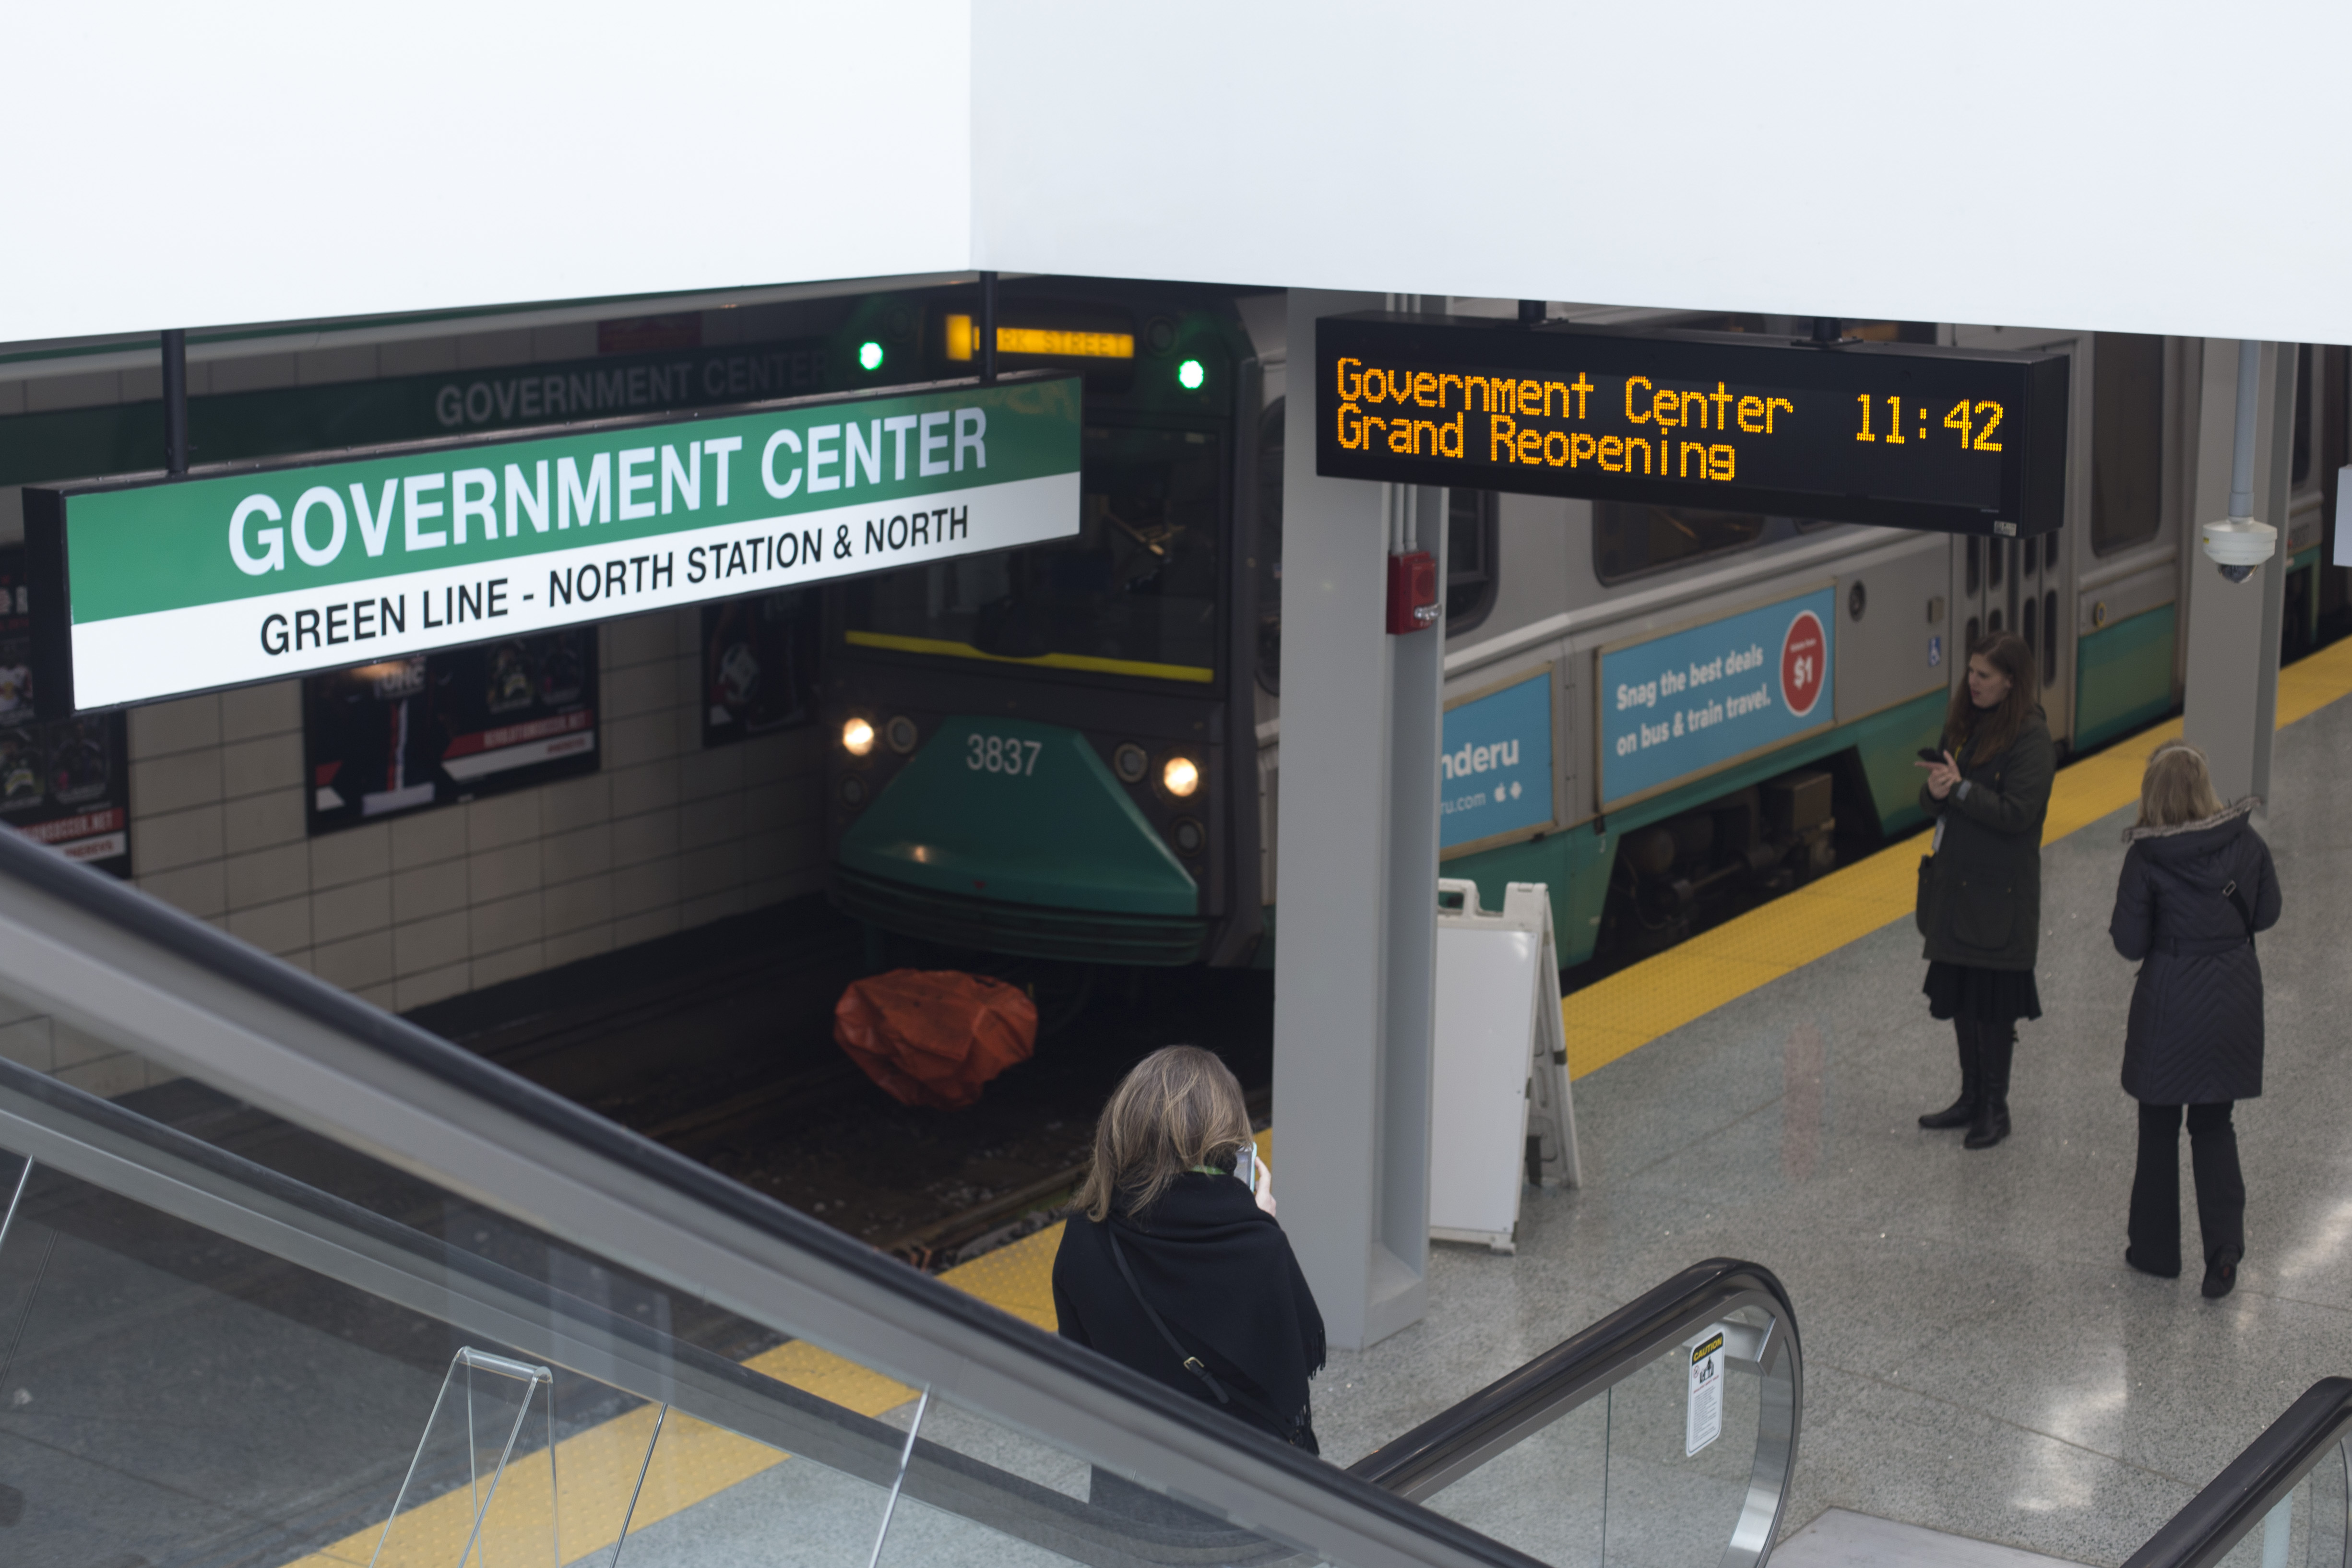 Renovated Govt  Center MBTA Station Re-Opens – Boston University